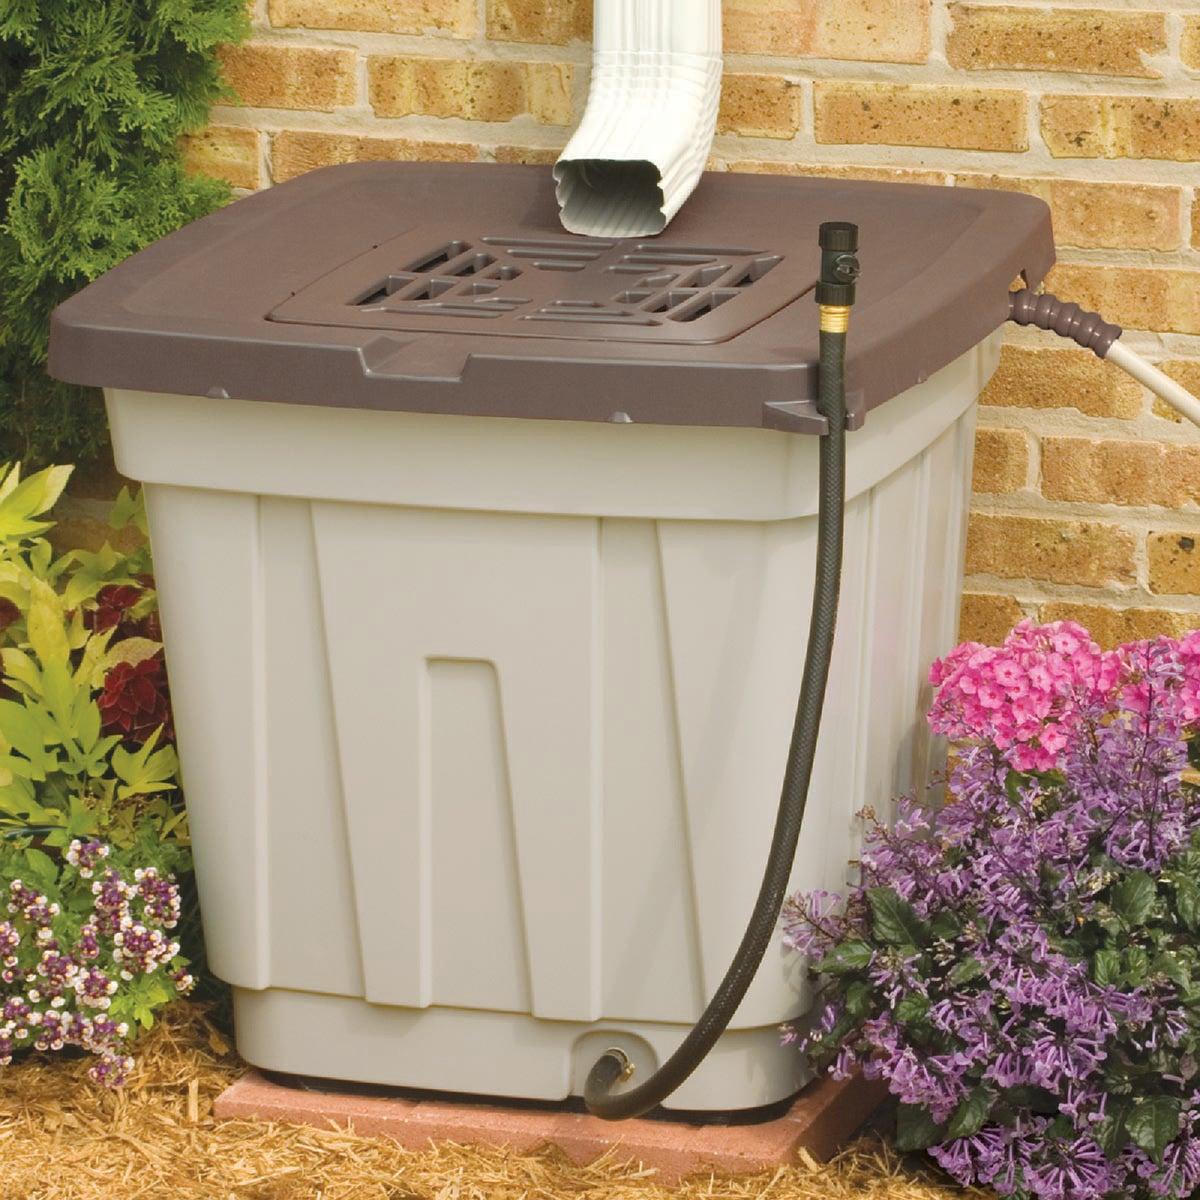 52 GAL RAIN BARREL - RB5010PK by Suncast Corporation